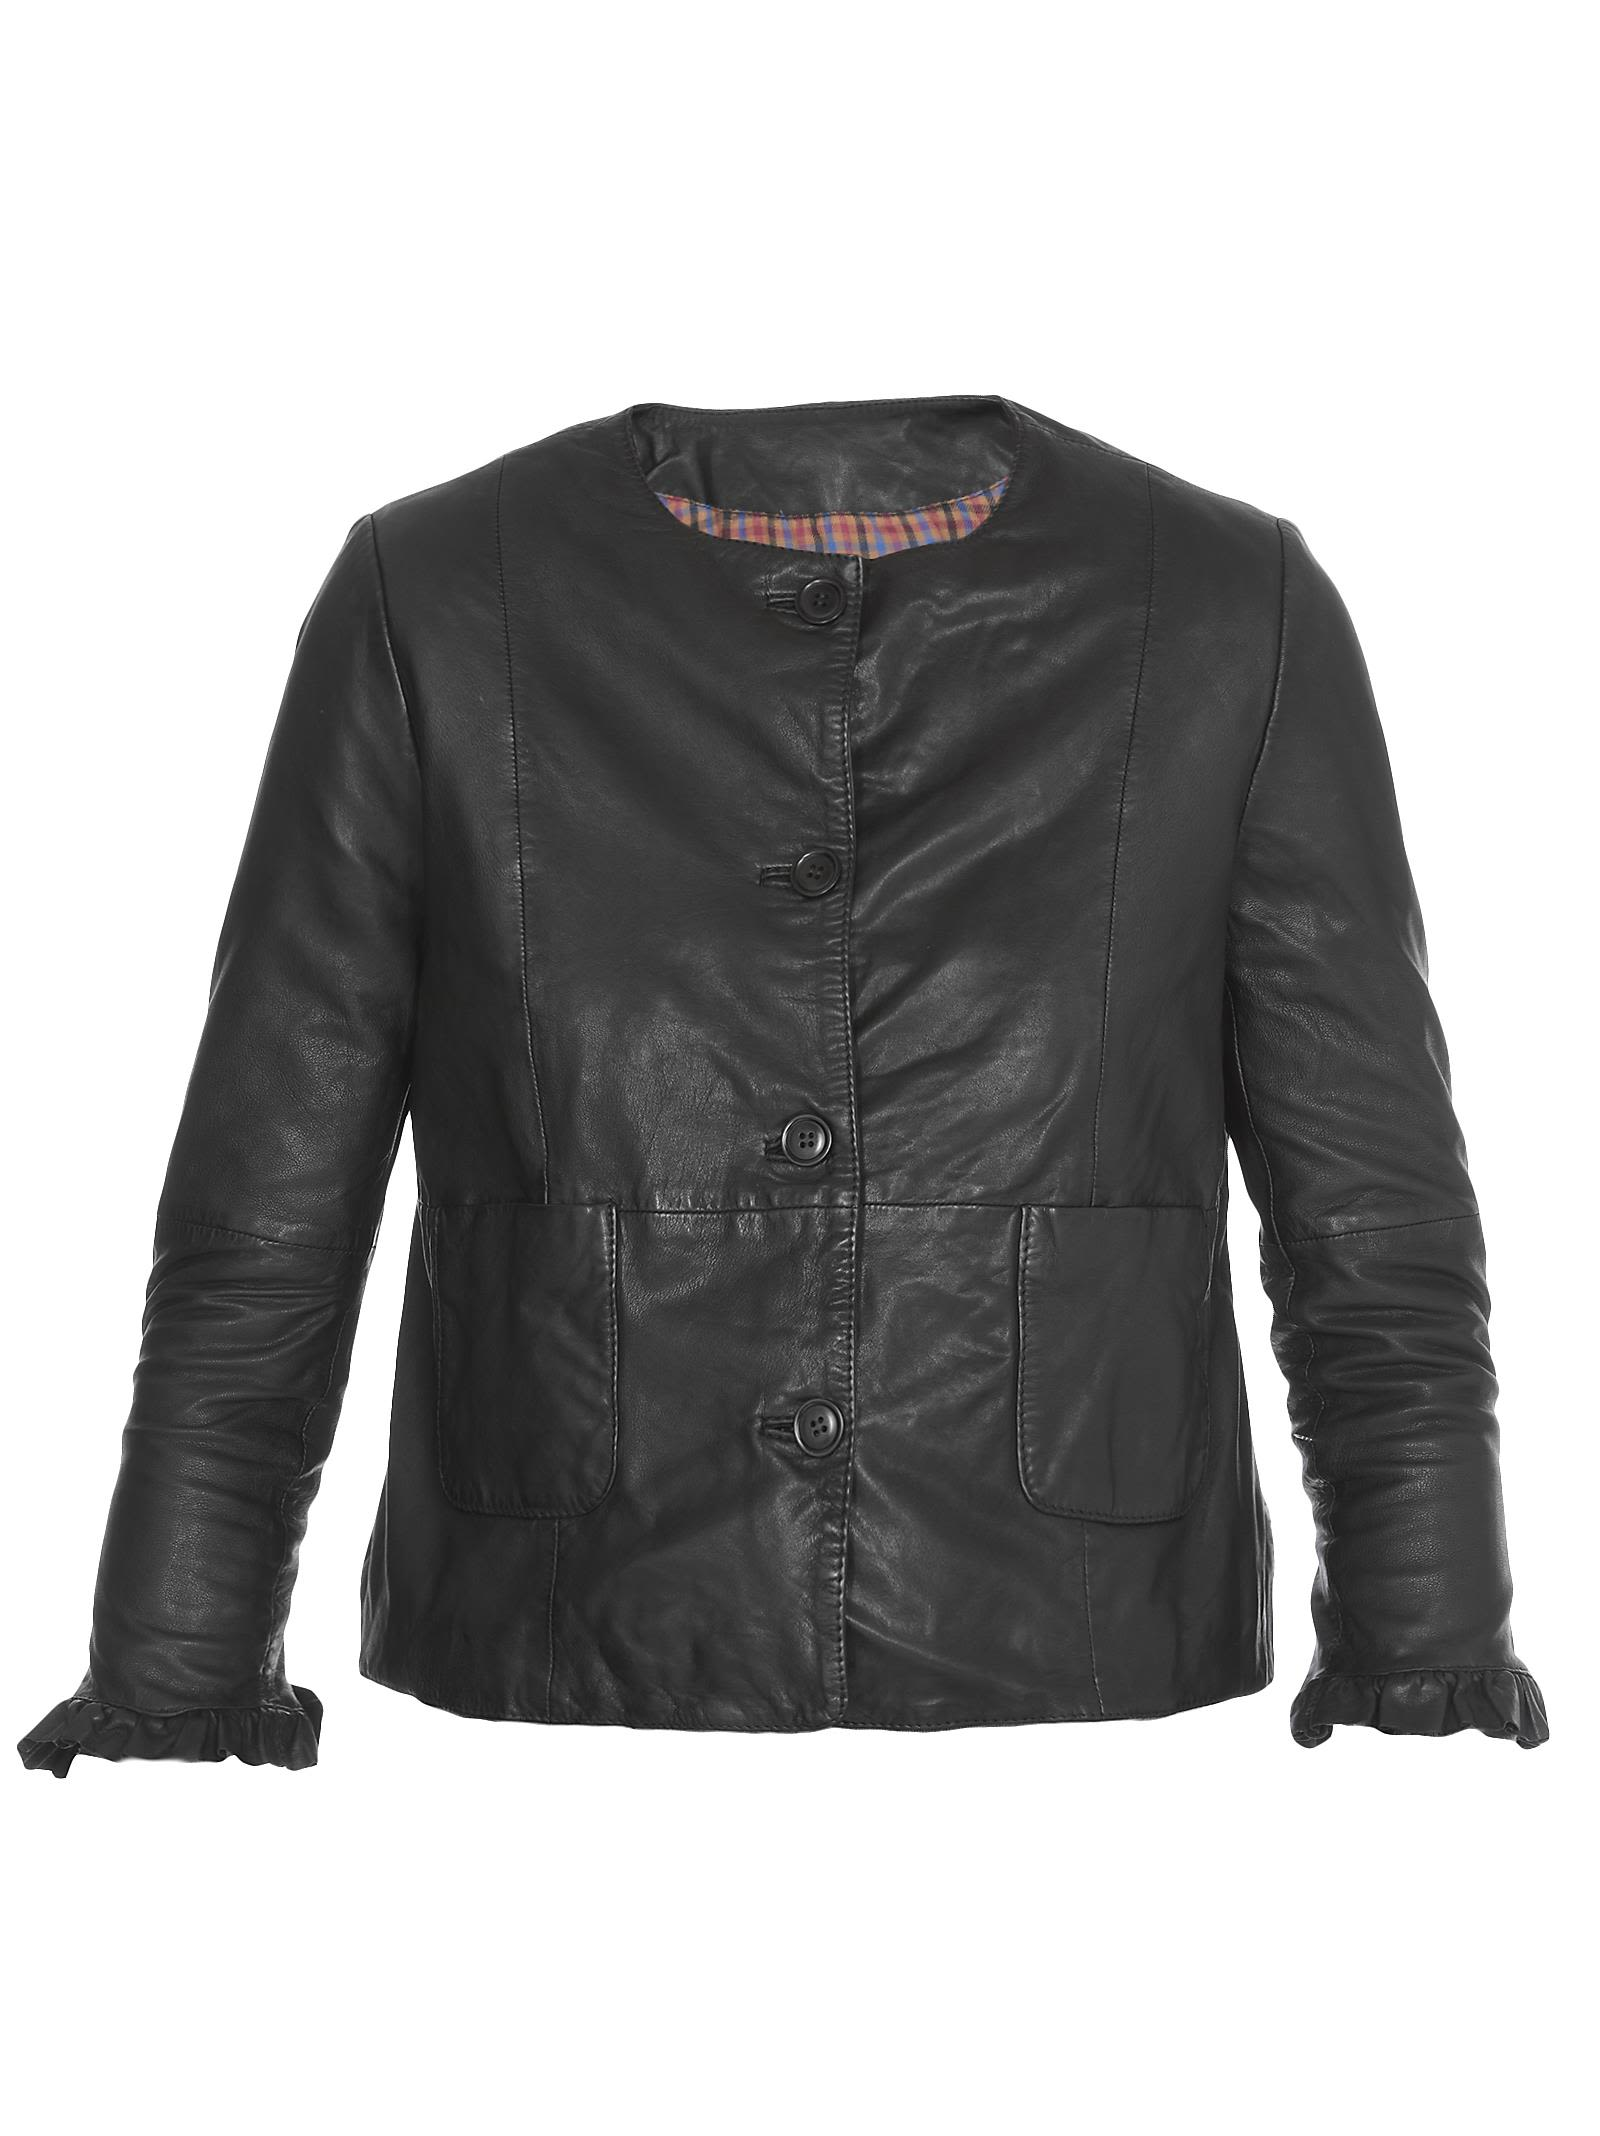 BULLY Chanel Leather Jacket in Black